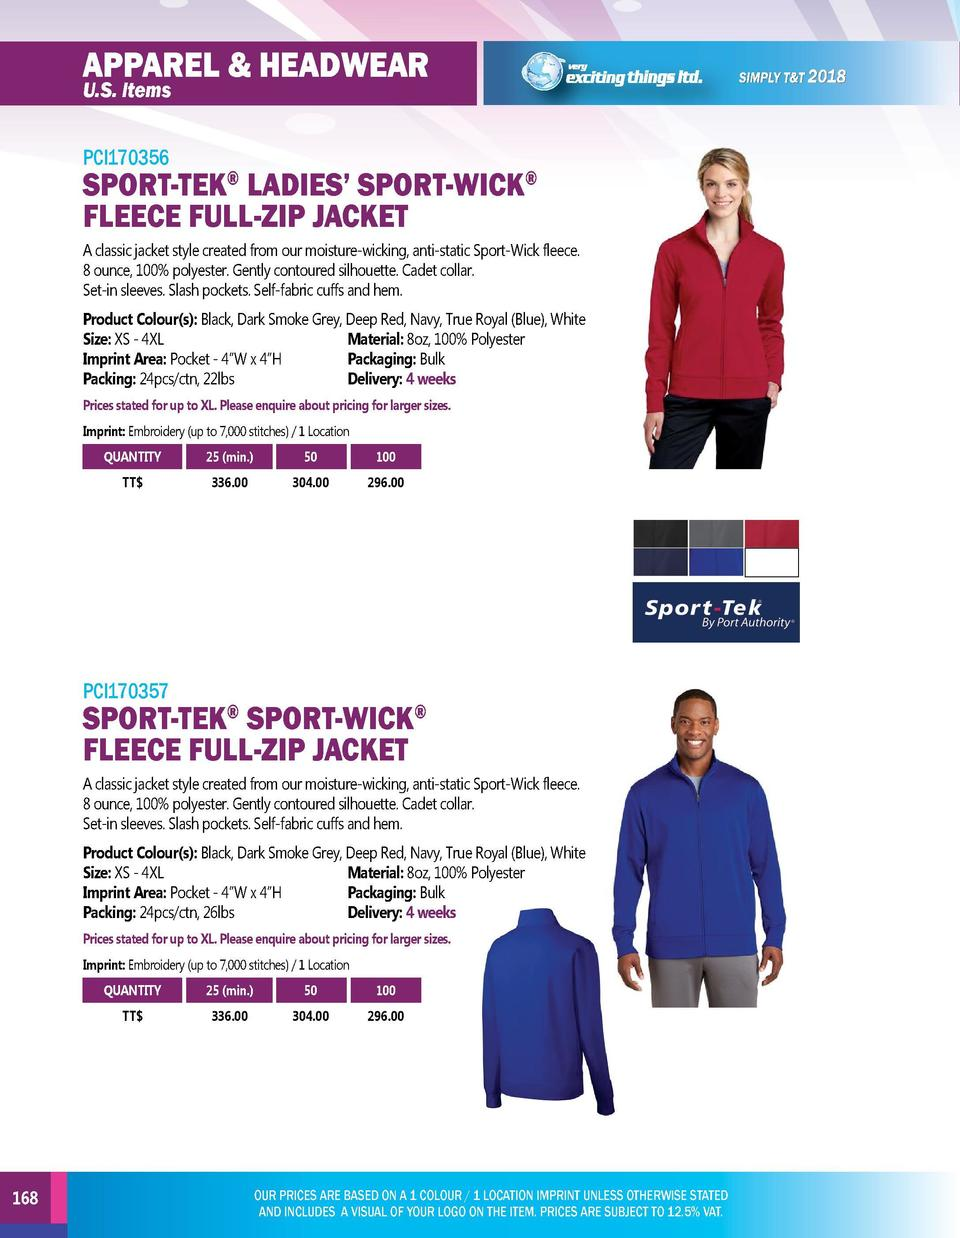 APPAREL   HEADWEAR  APPAREL   HEADWEAR  U.S. Items  PCI170356  U.S. Items  SPORT-TEK LADIES    SPORT-WICK FLEECE FULL-ZIP ...